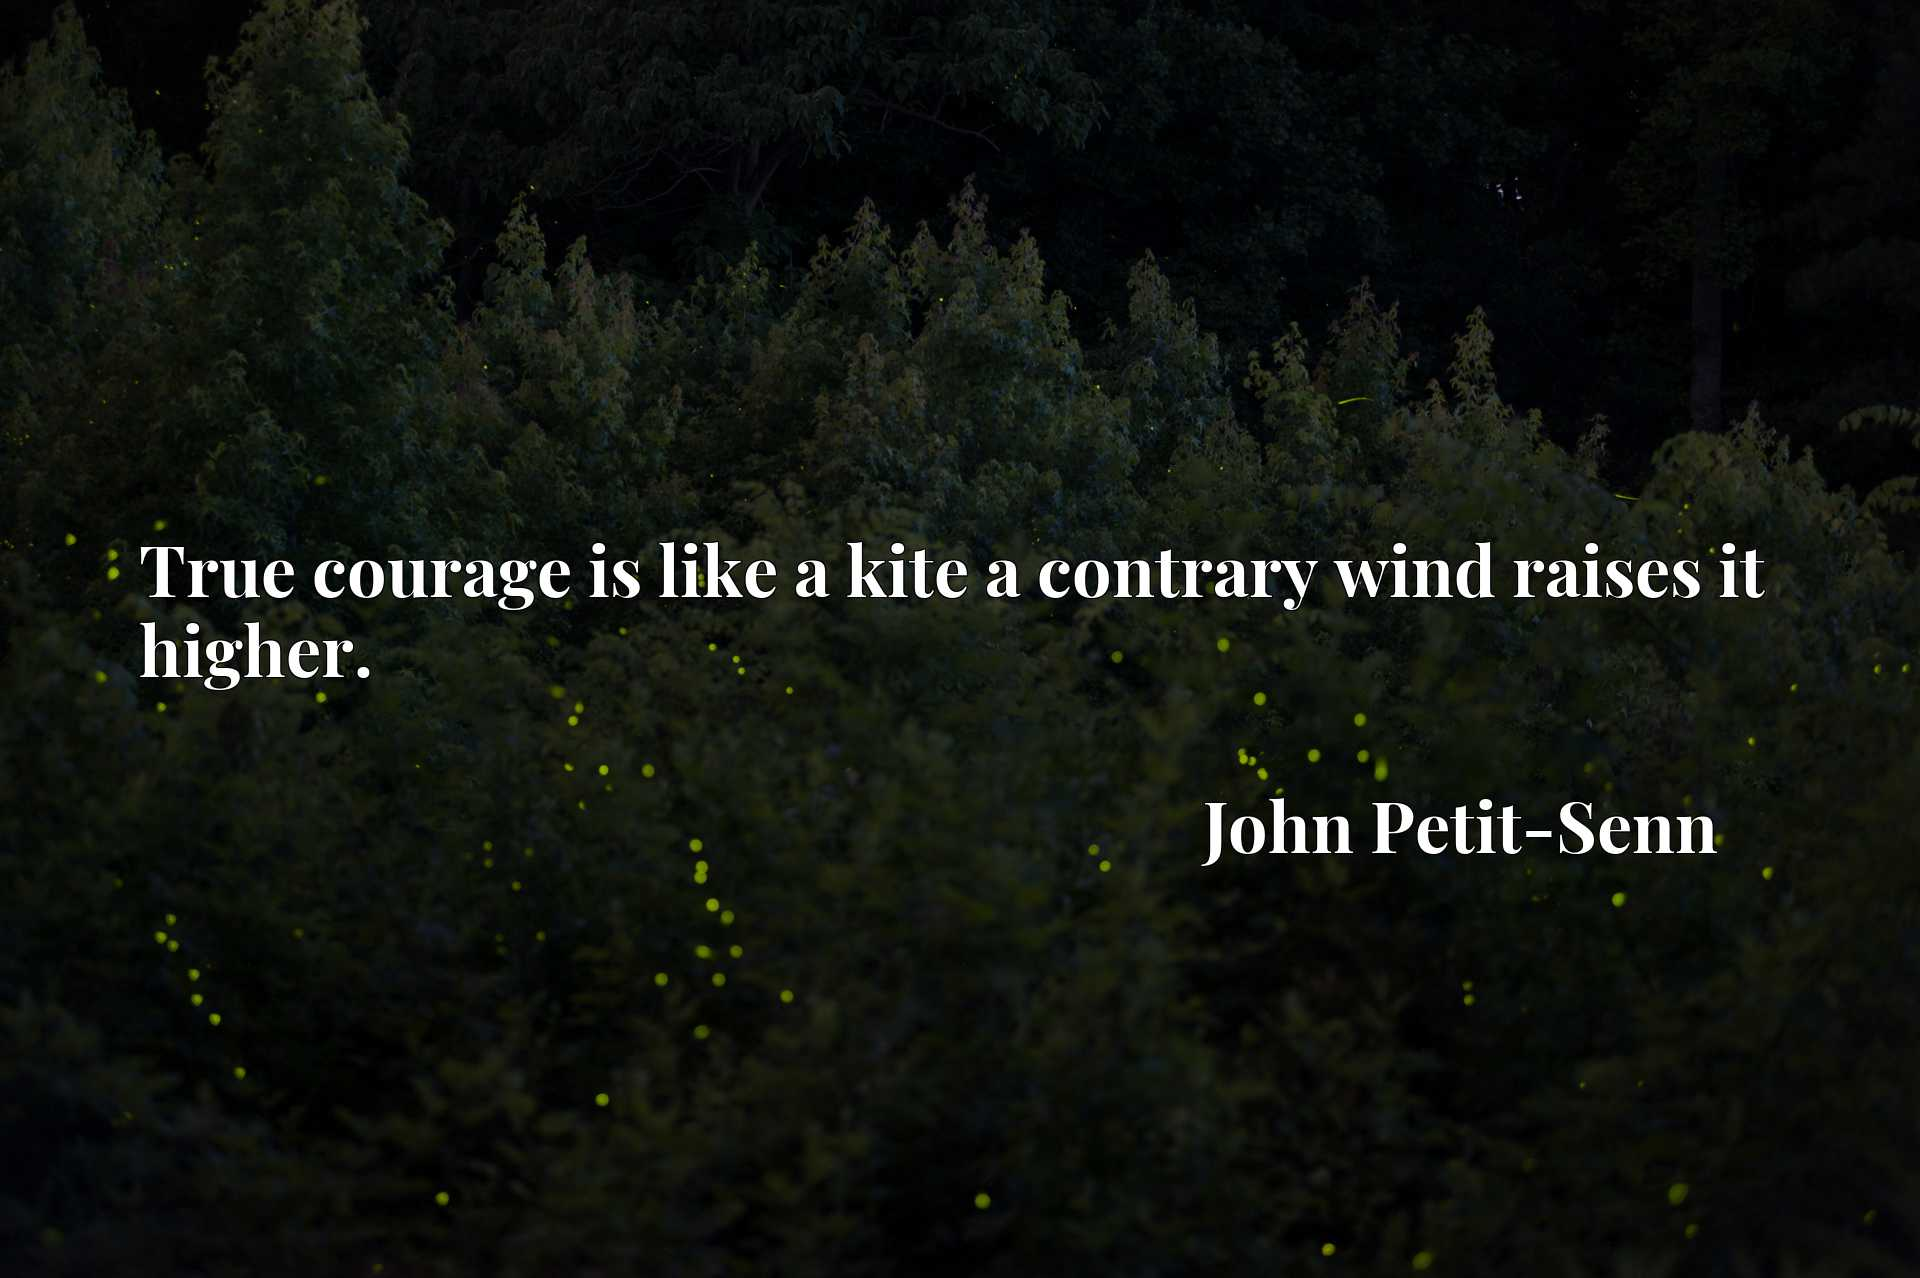 True courage is like a kite a contrary wind raises it higher.